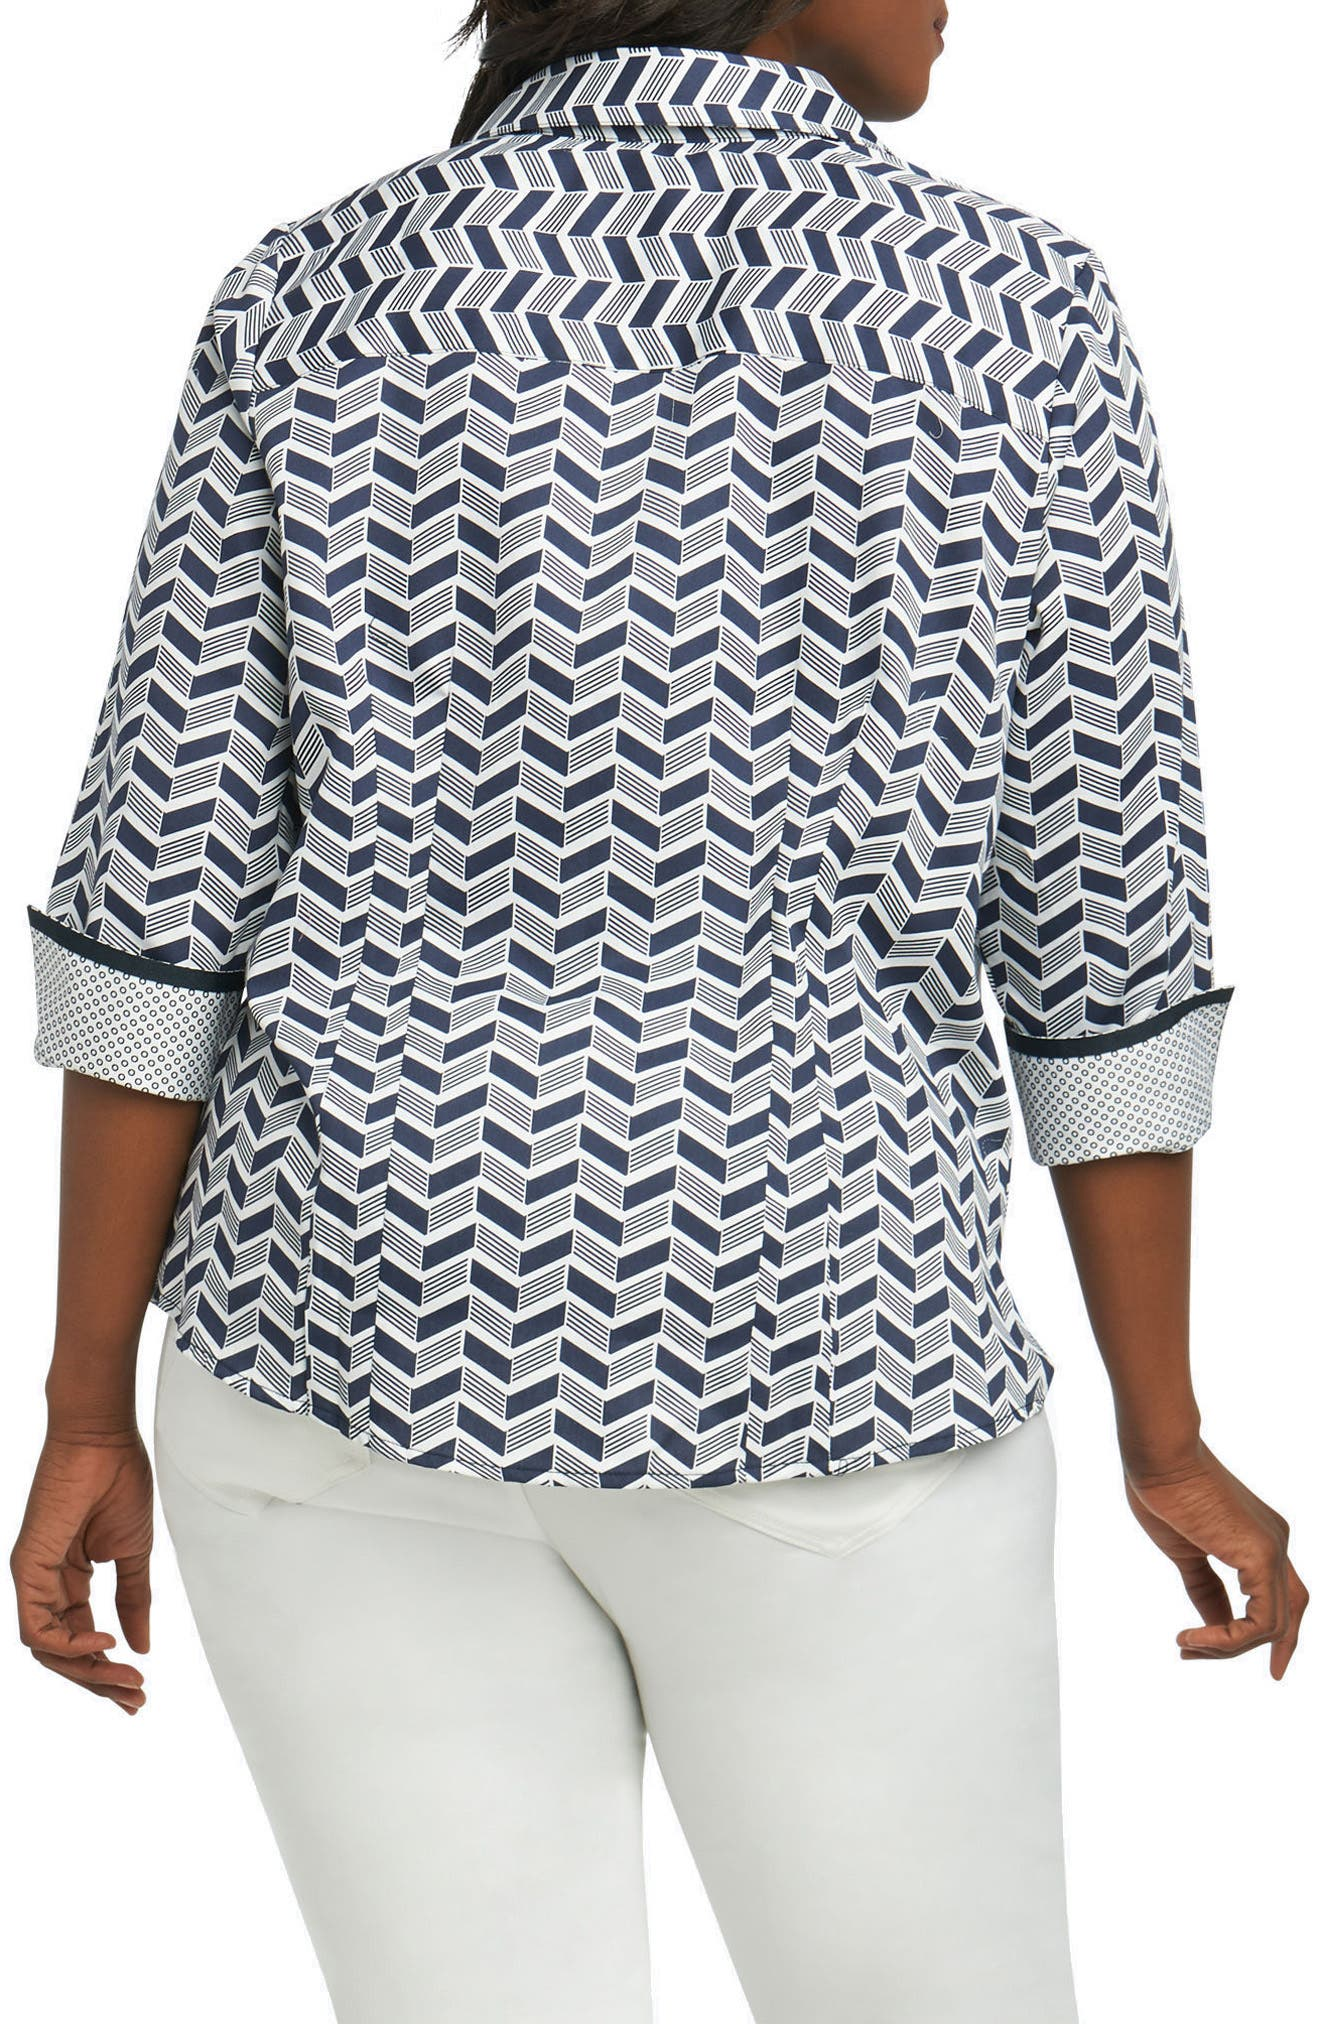 Taylor Chevron Non Iron Cotton Shirt,                             Alternate thumbnail 2, color,                             415